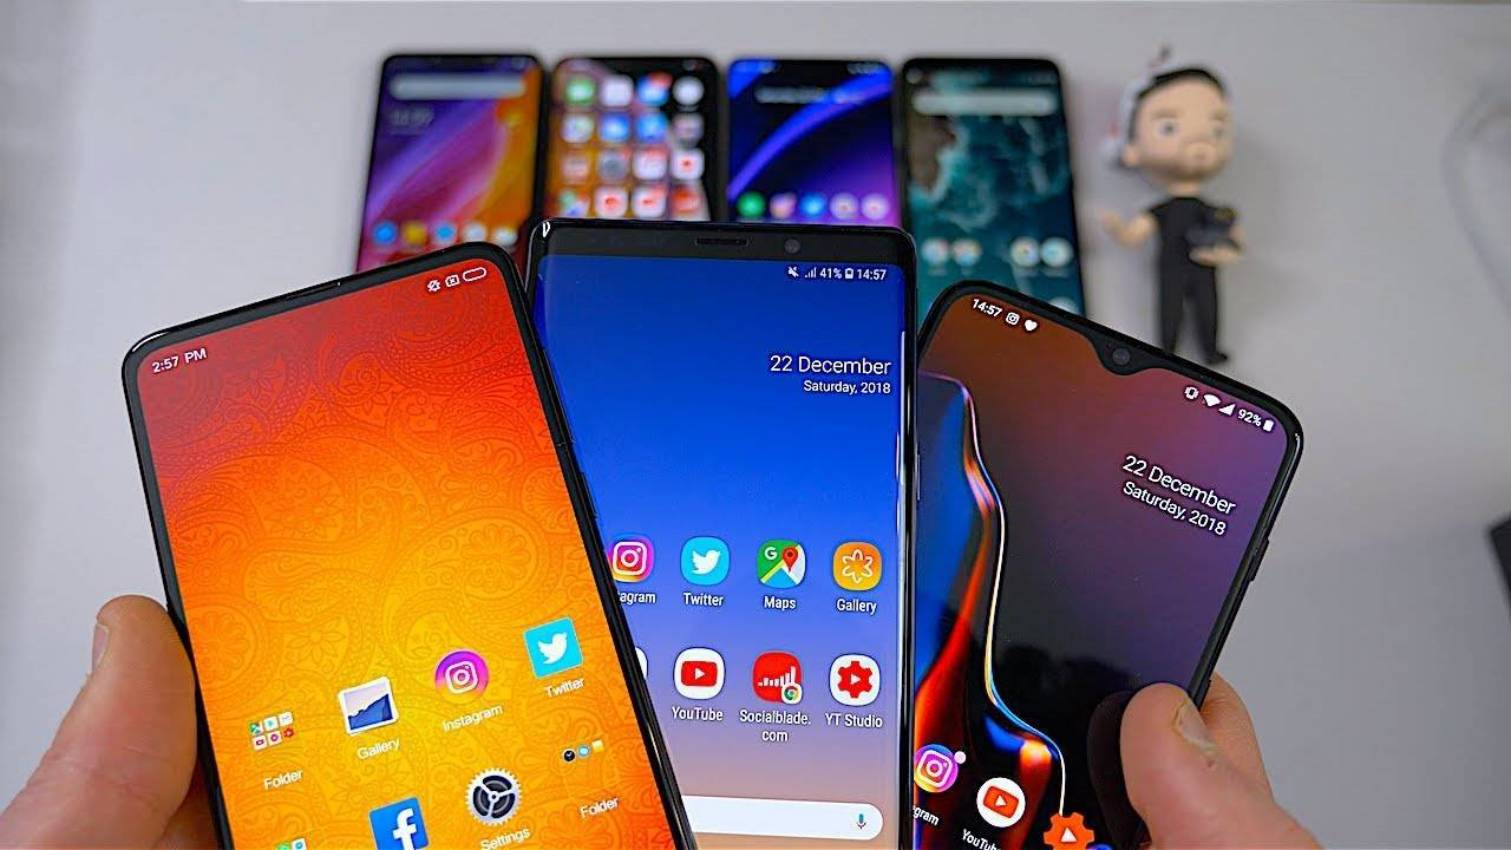 eMAG REDUCERE Telefoane Samsung, iPhone, Huawei